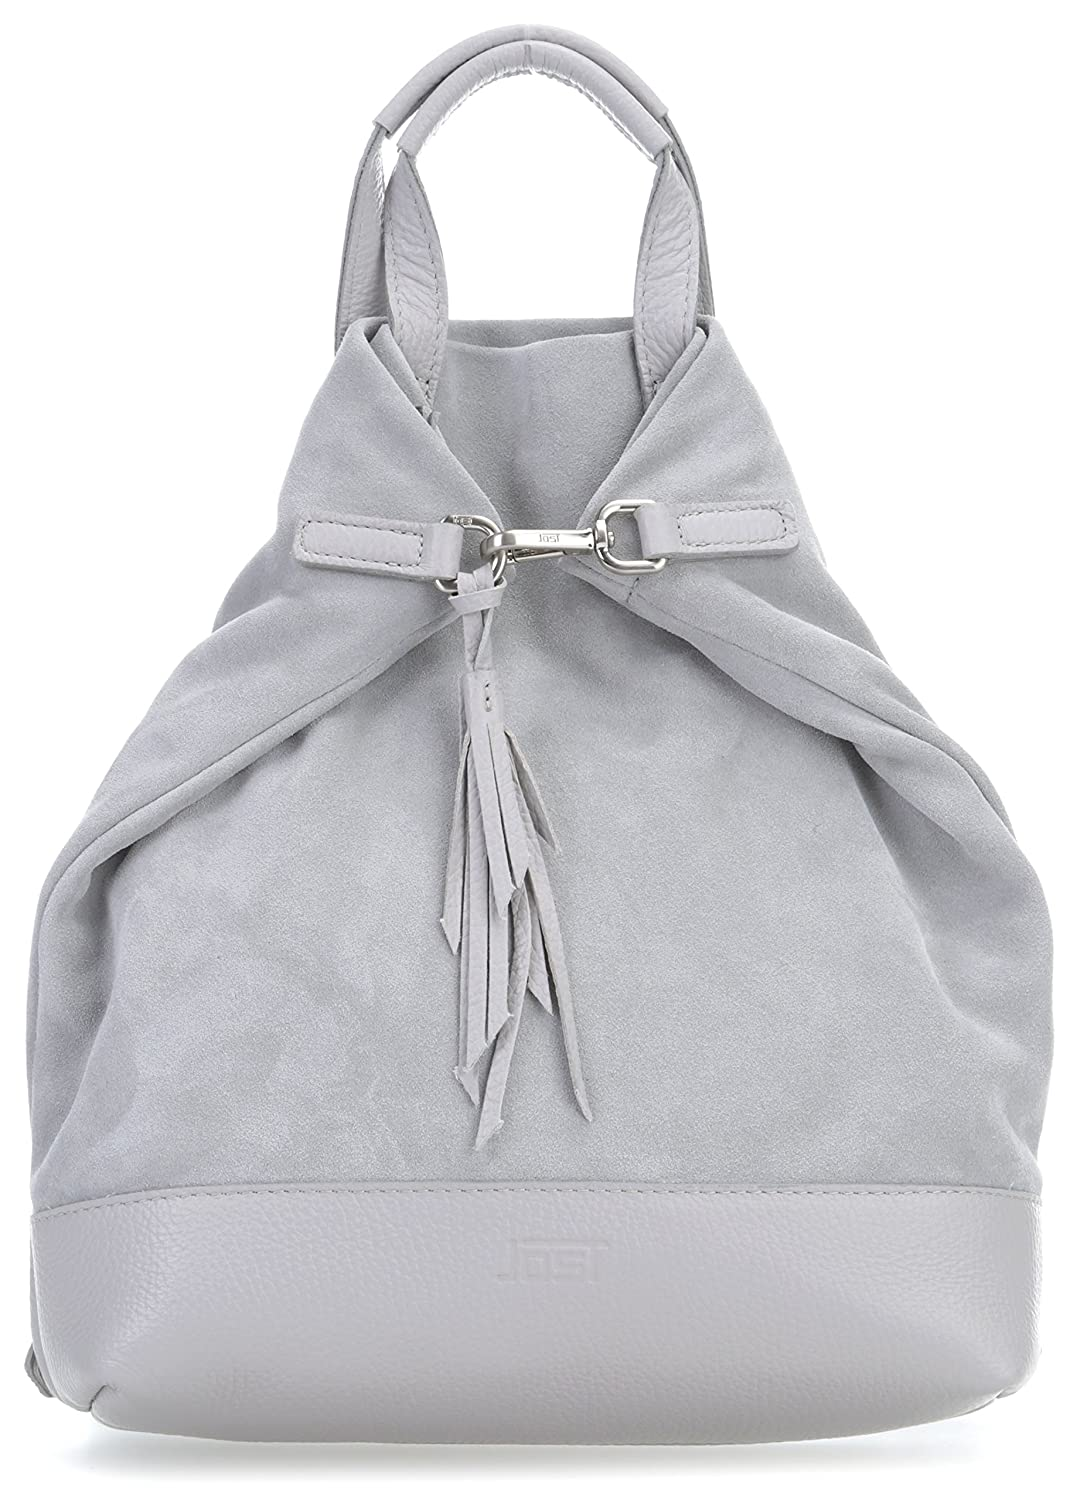 77c8c9bd5f Jost Motala X-Change (3in1) XS Backpack grey  Amazon.co.uk  Clothing